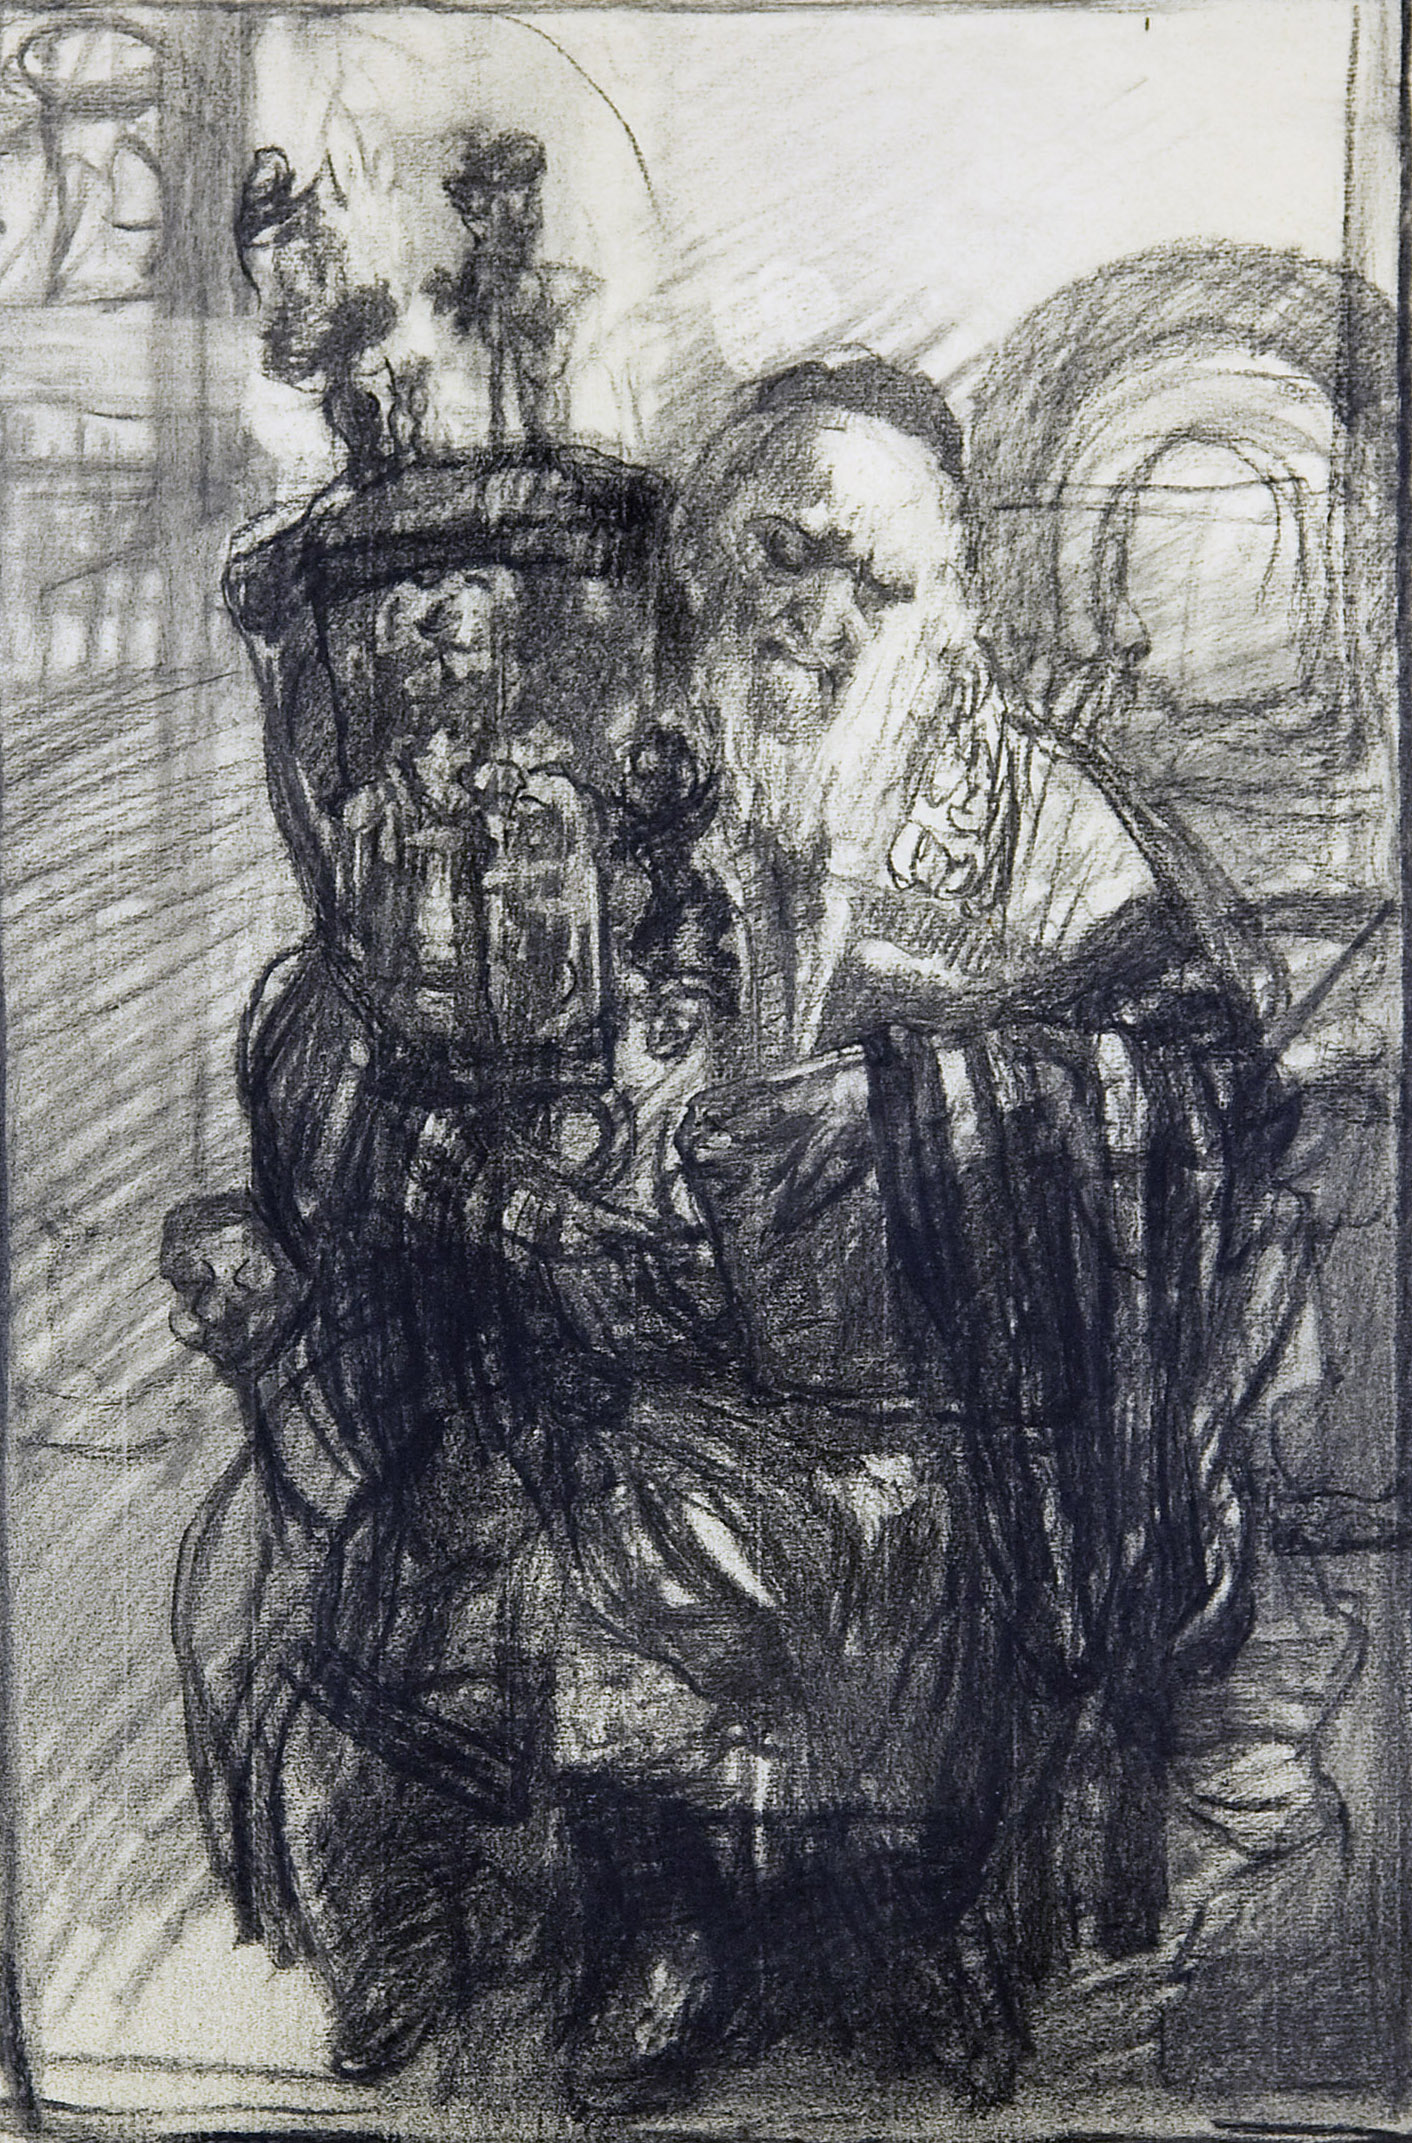 Hyman Bloom  Rabbi with Torah,  1960s charcoal on paper, 18 x 11 1/2 inches